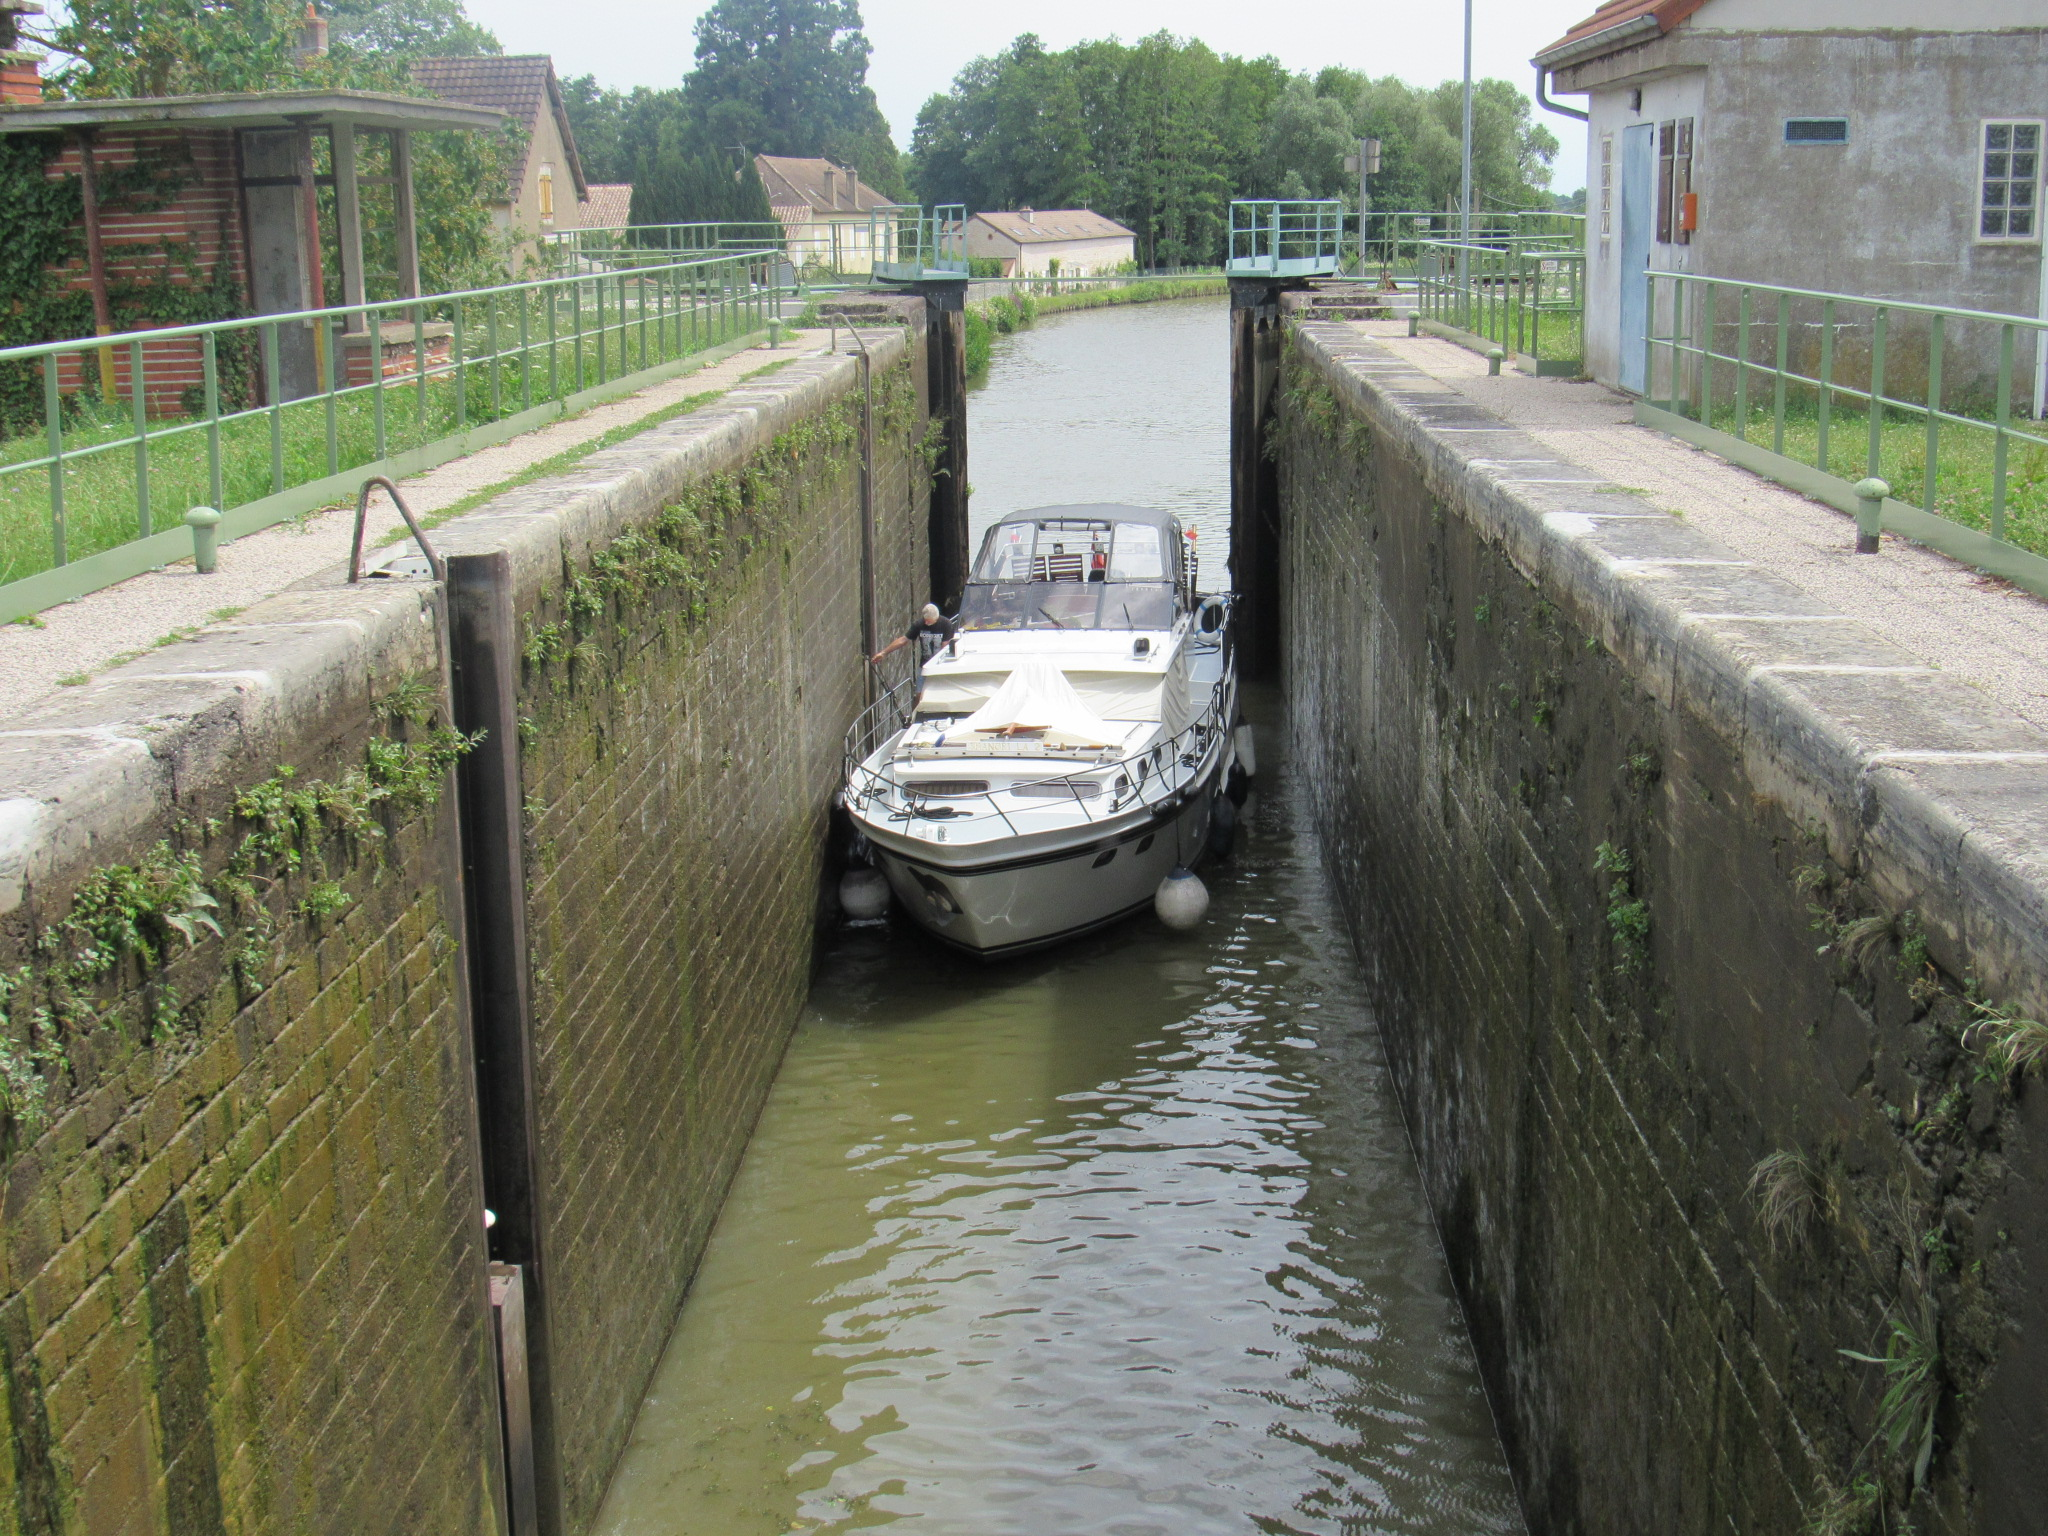 Locking up on Canal du Centre